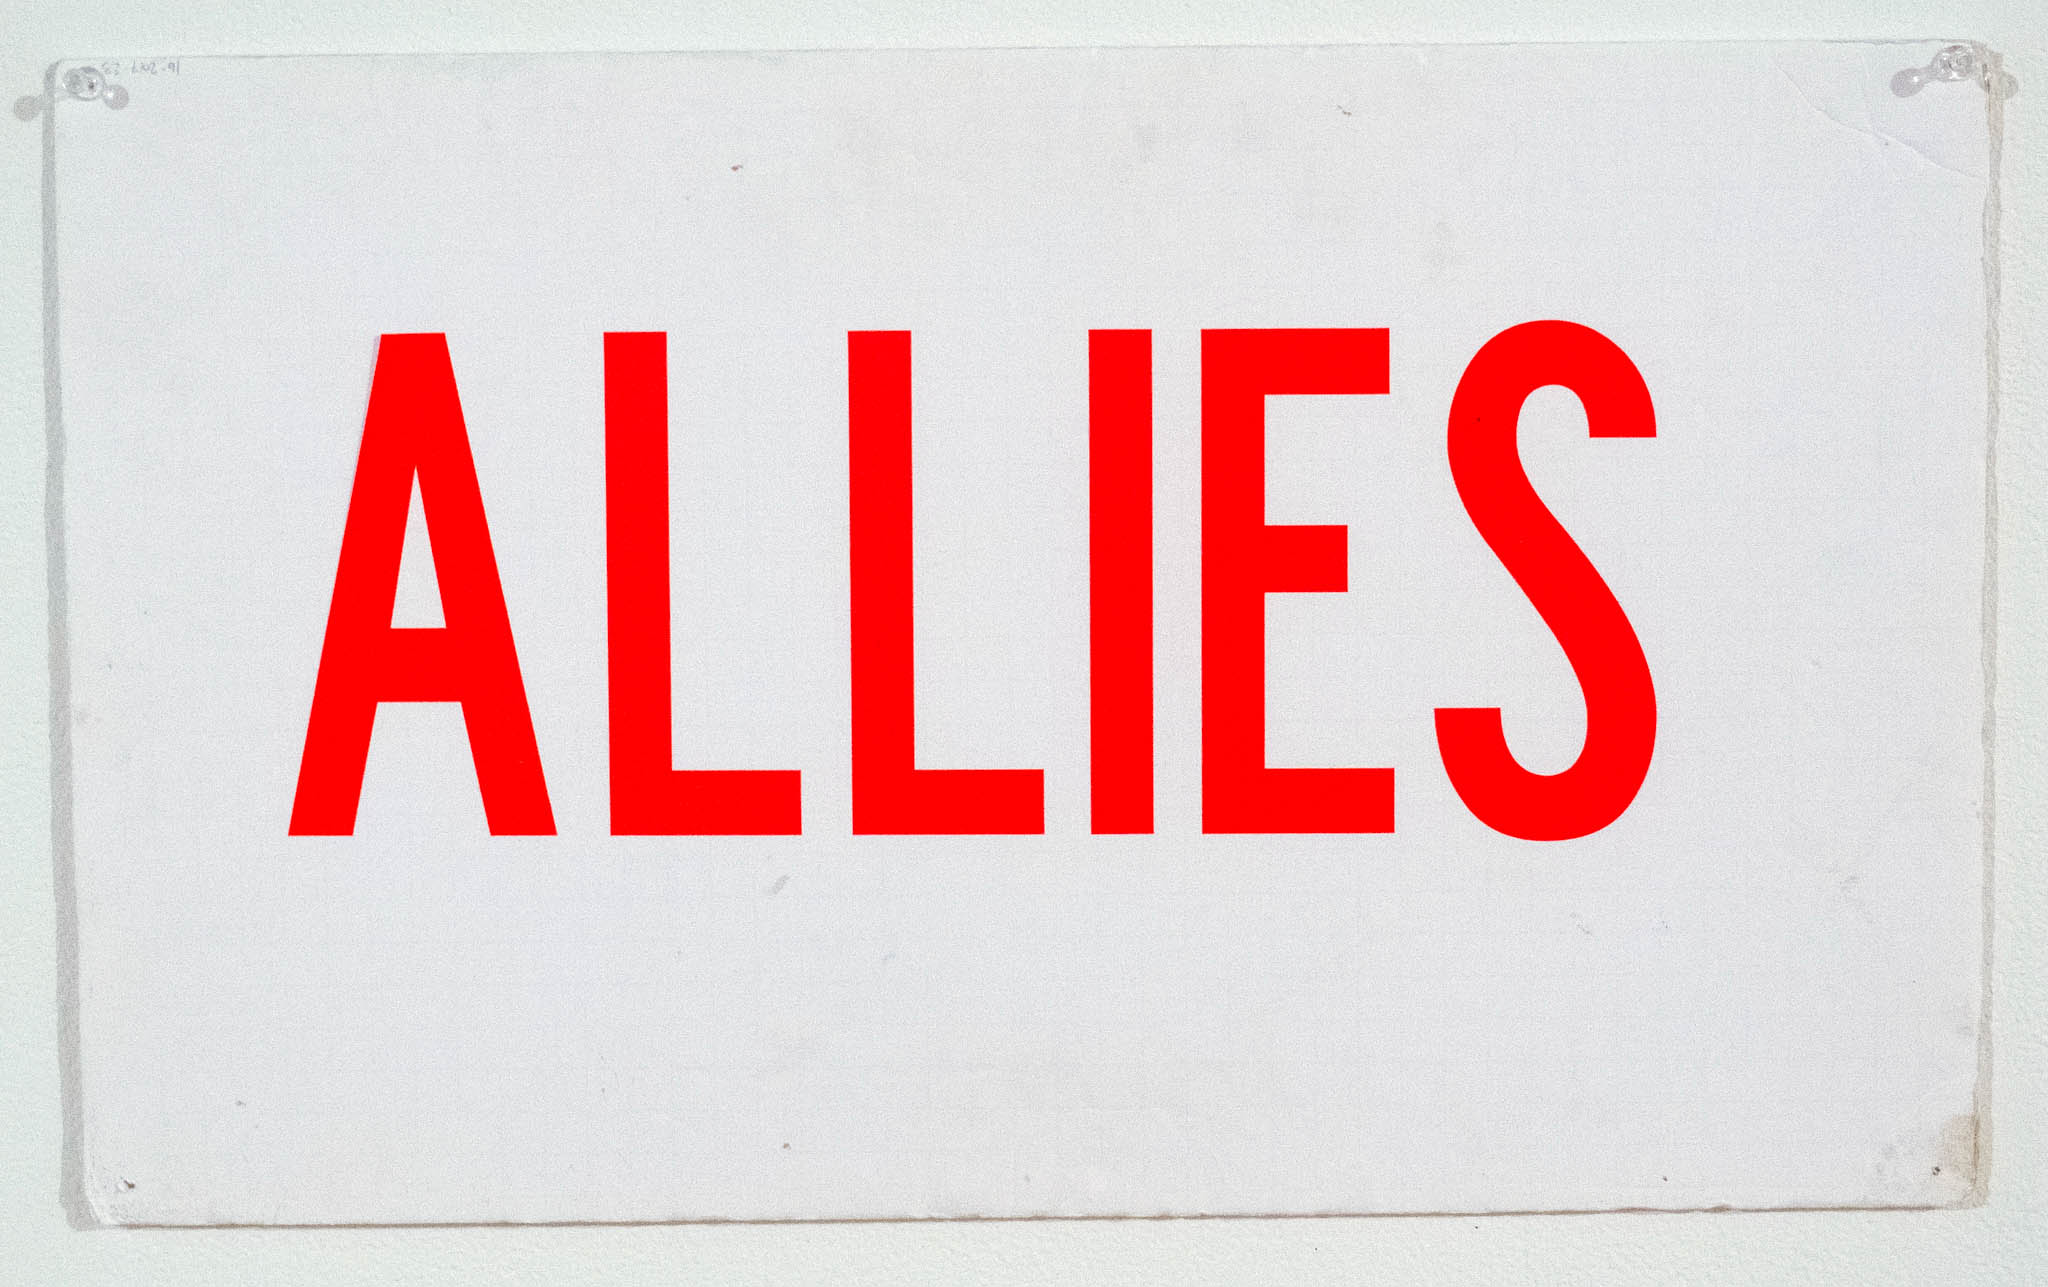 Allies / Don't bully